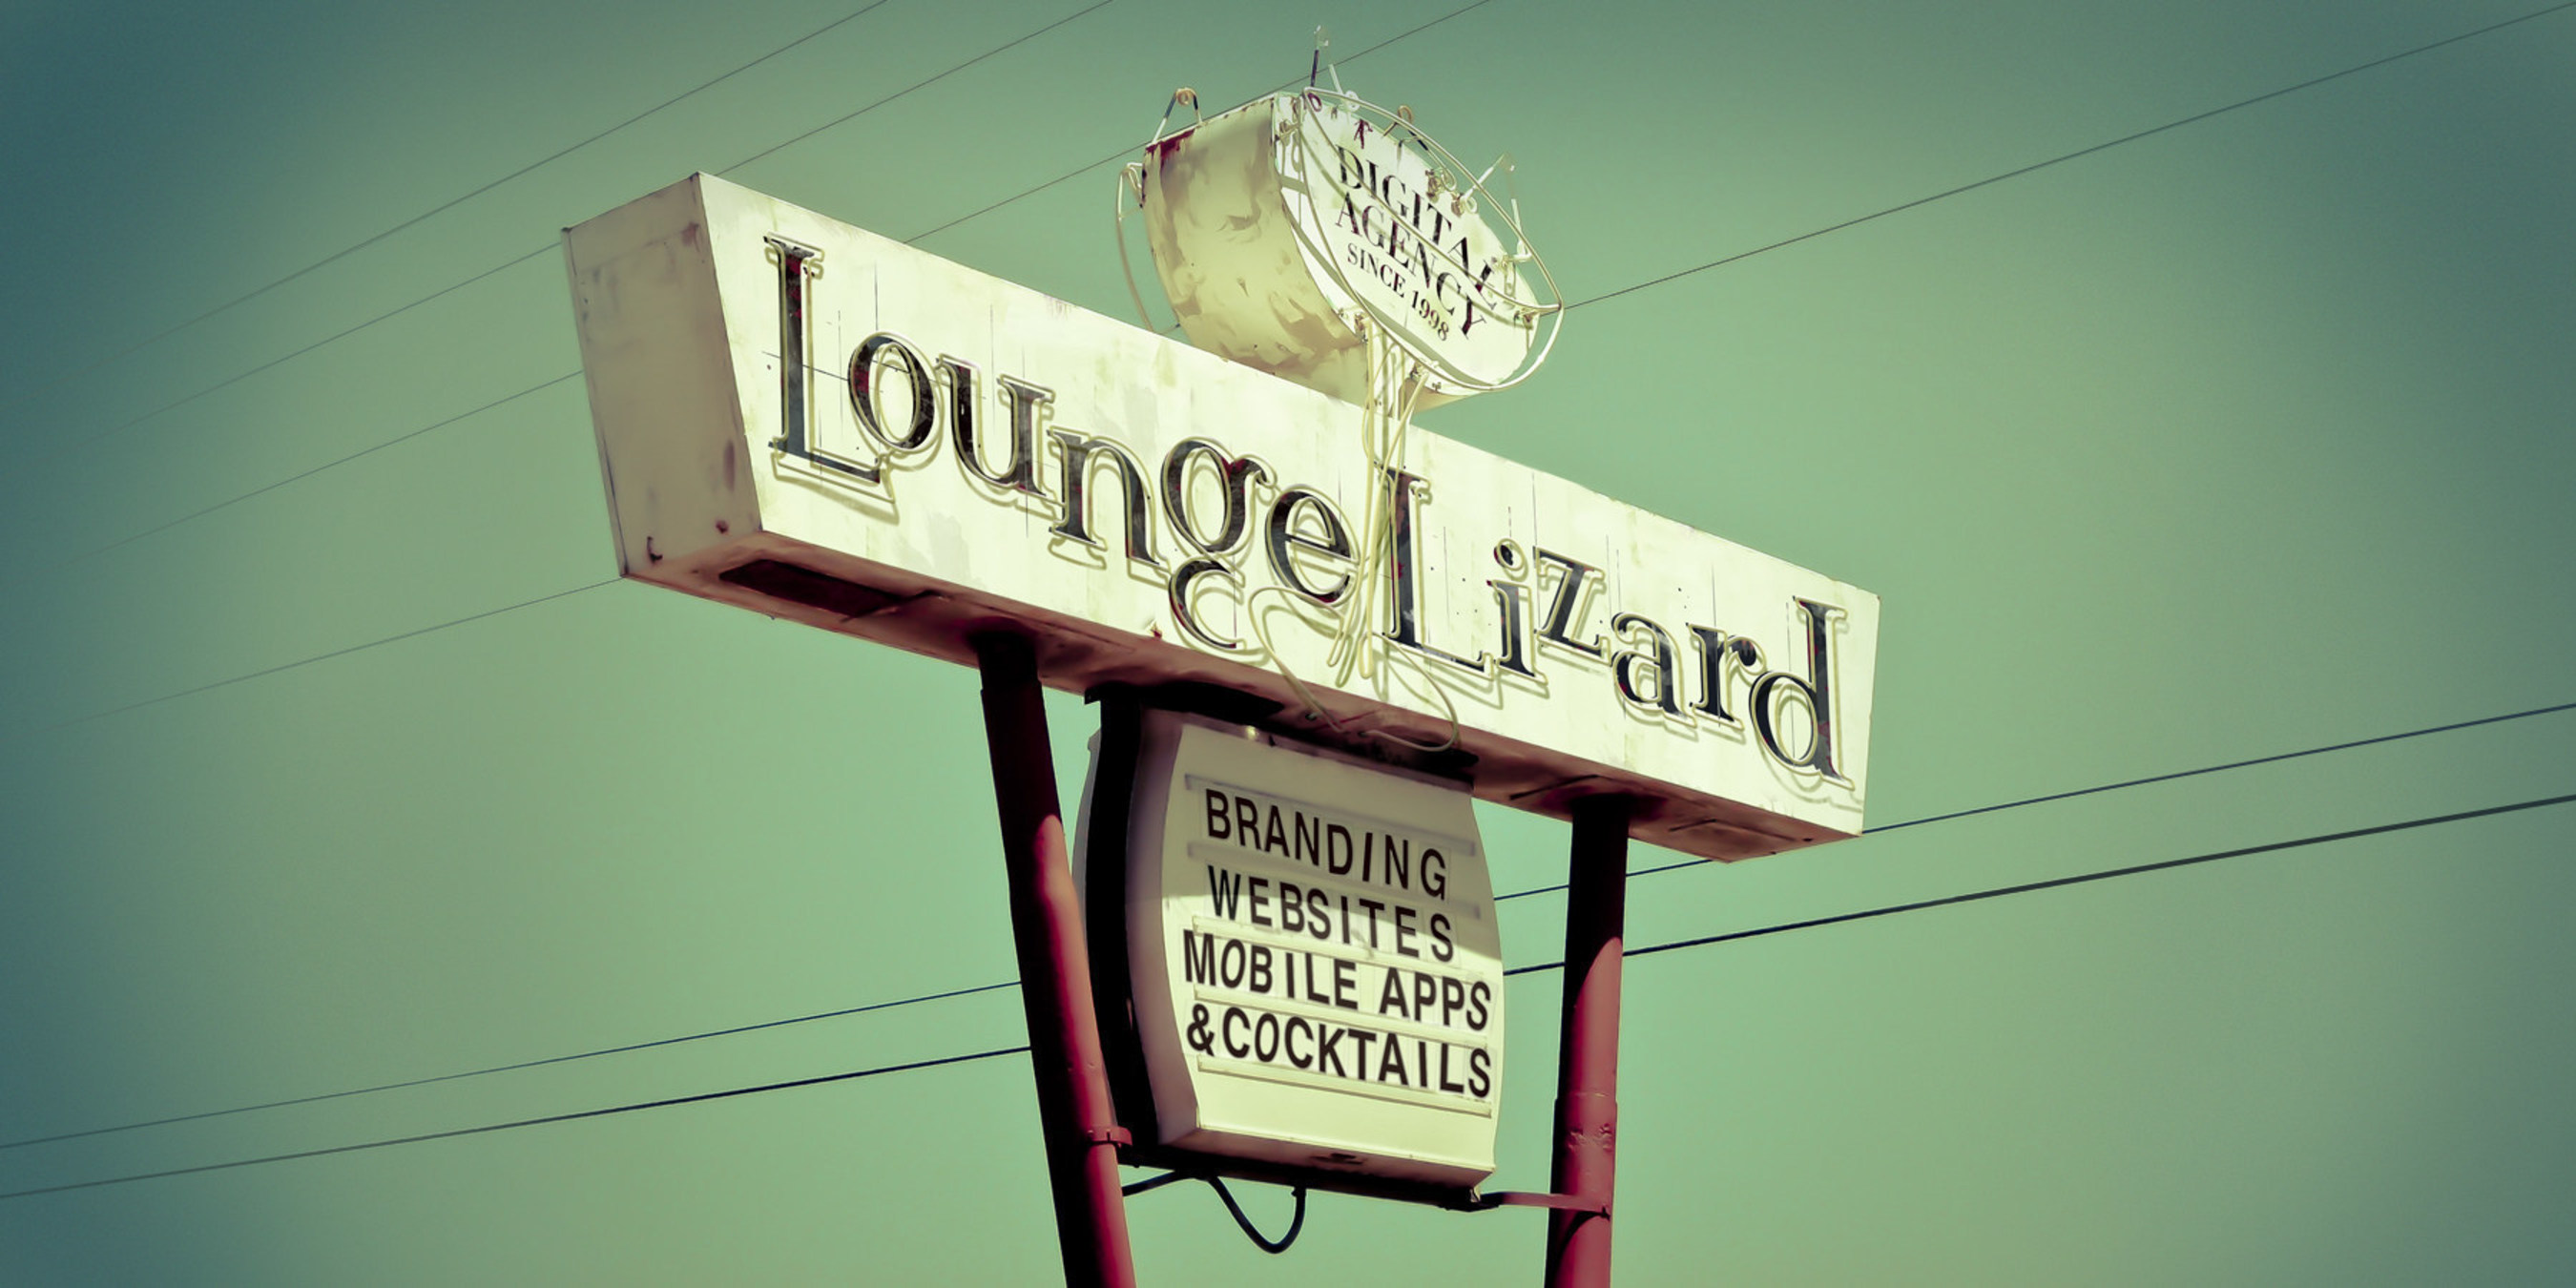 Lounge Lizard Shares 5 Things to Stop Adding Into Your Website